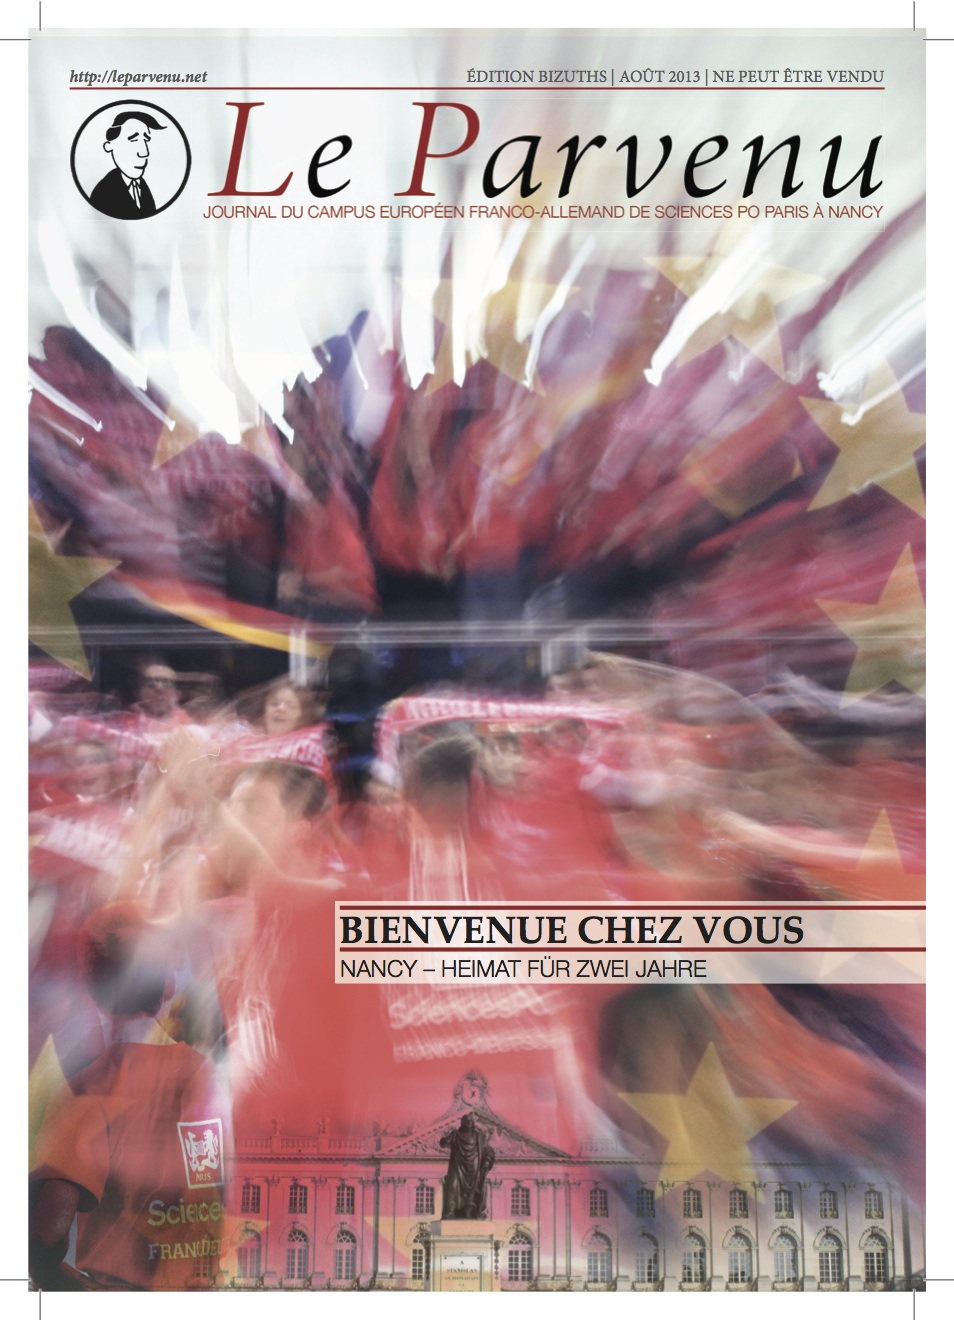 Cover of the Le Parvenu welcome edition 2014.